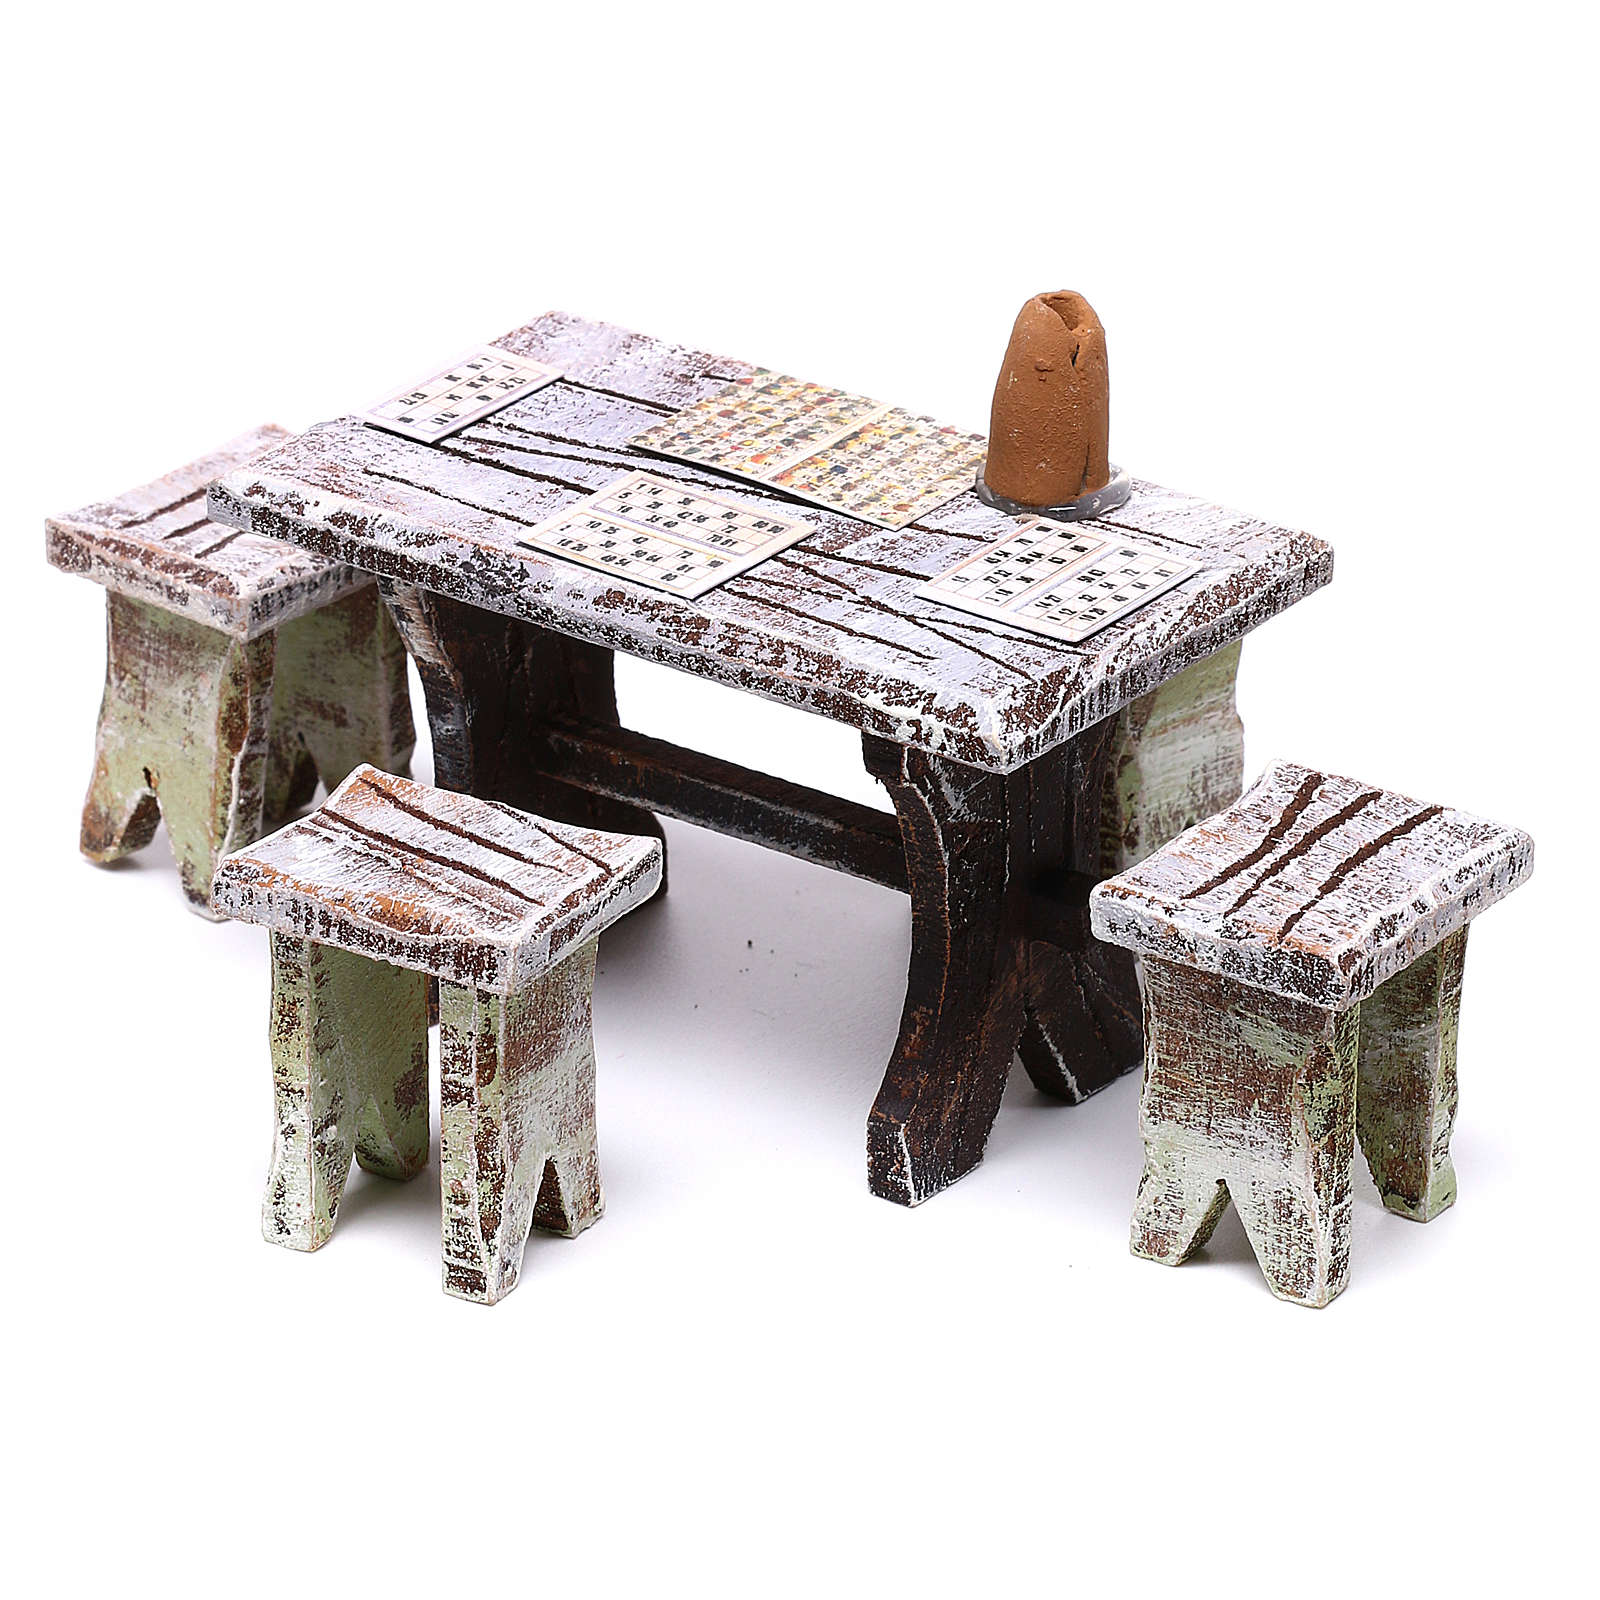 Bingo table with stools of 5x5x5 cm, for 10 cm nativity 4